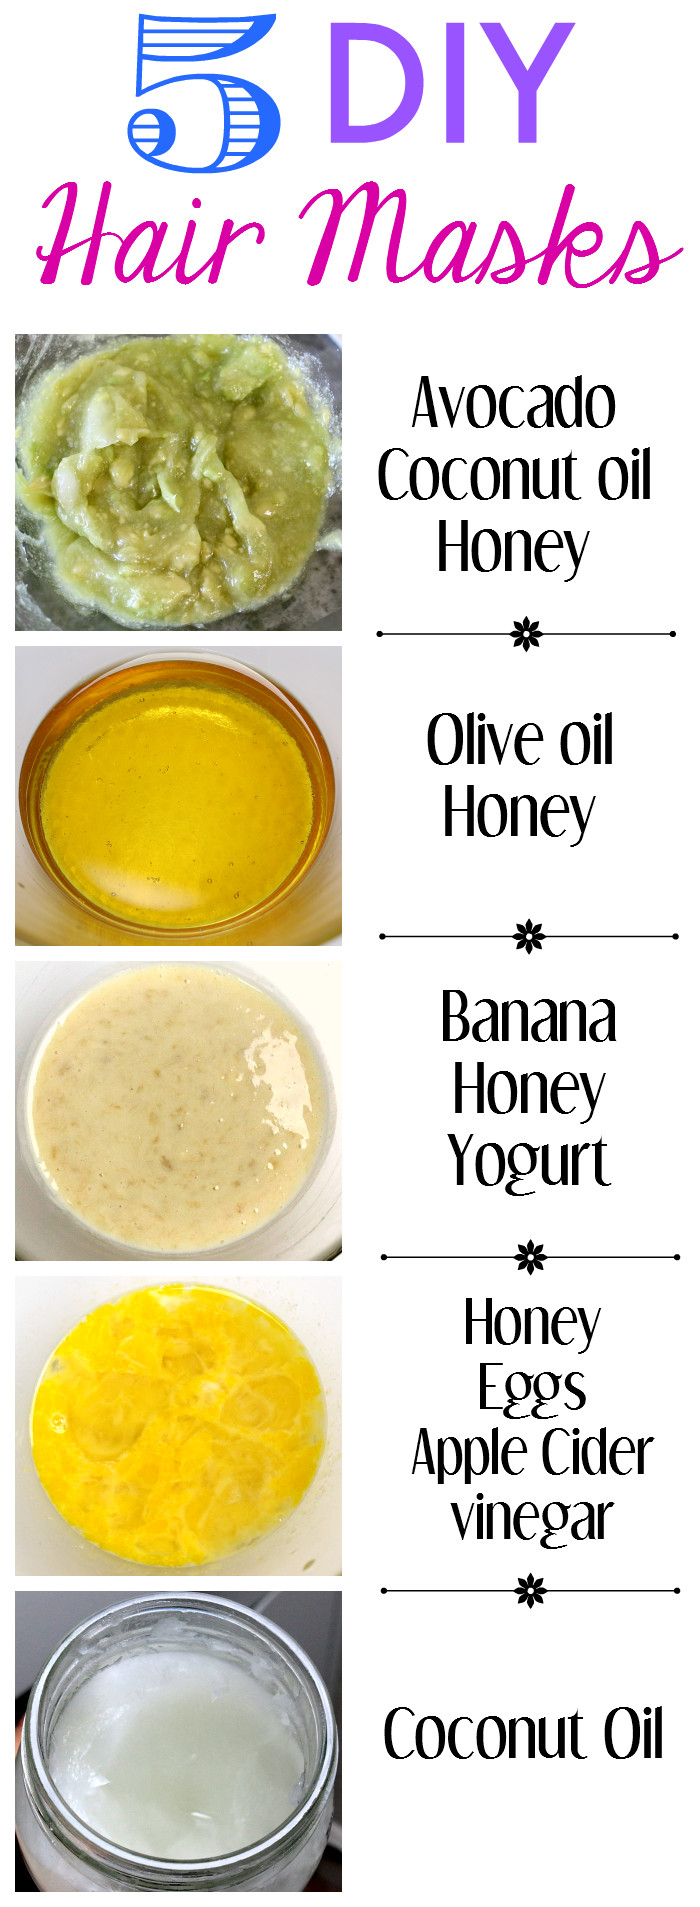 Best ideas about DIY Hair Masks . Save or Pin 5 DIY Hair Masks You Can Make at Home Now.